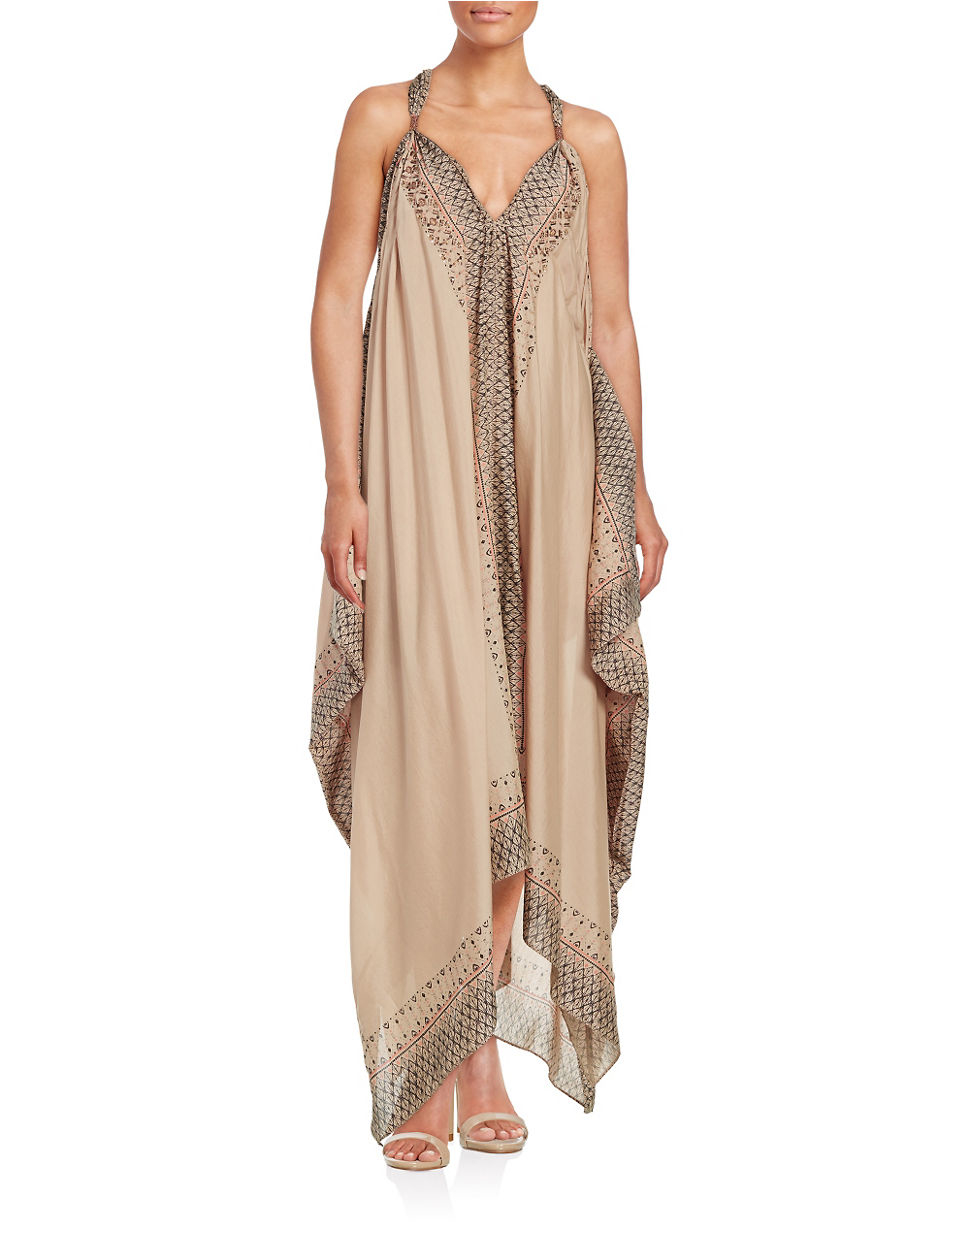 Free people Merida Patterned Maxi Dress in Natural | Lyst